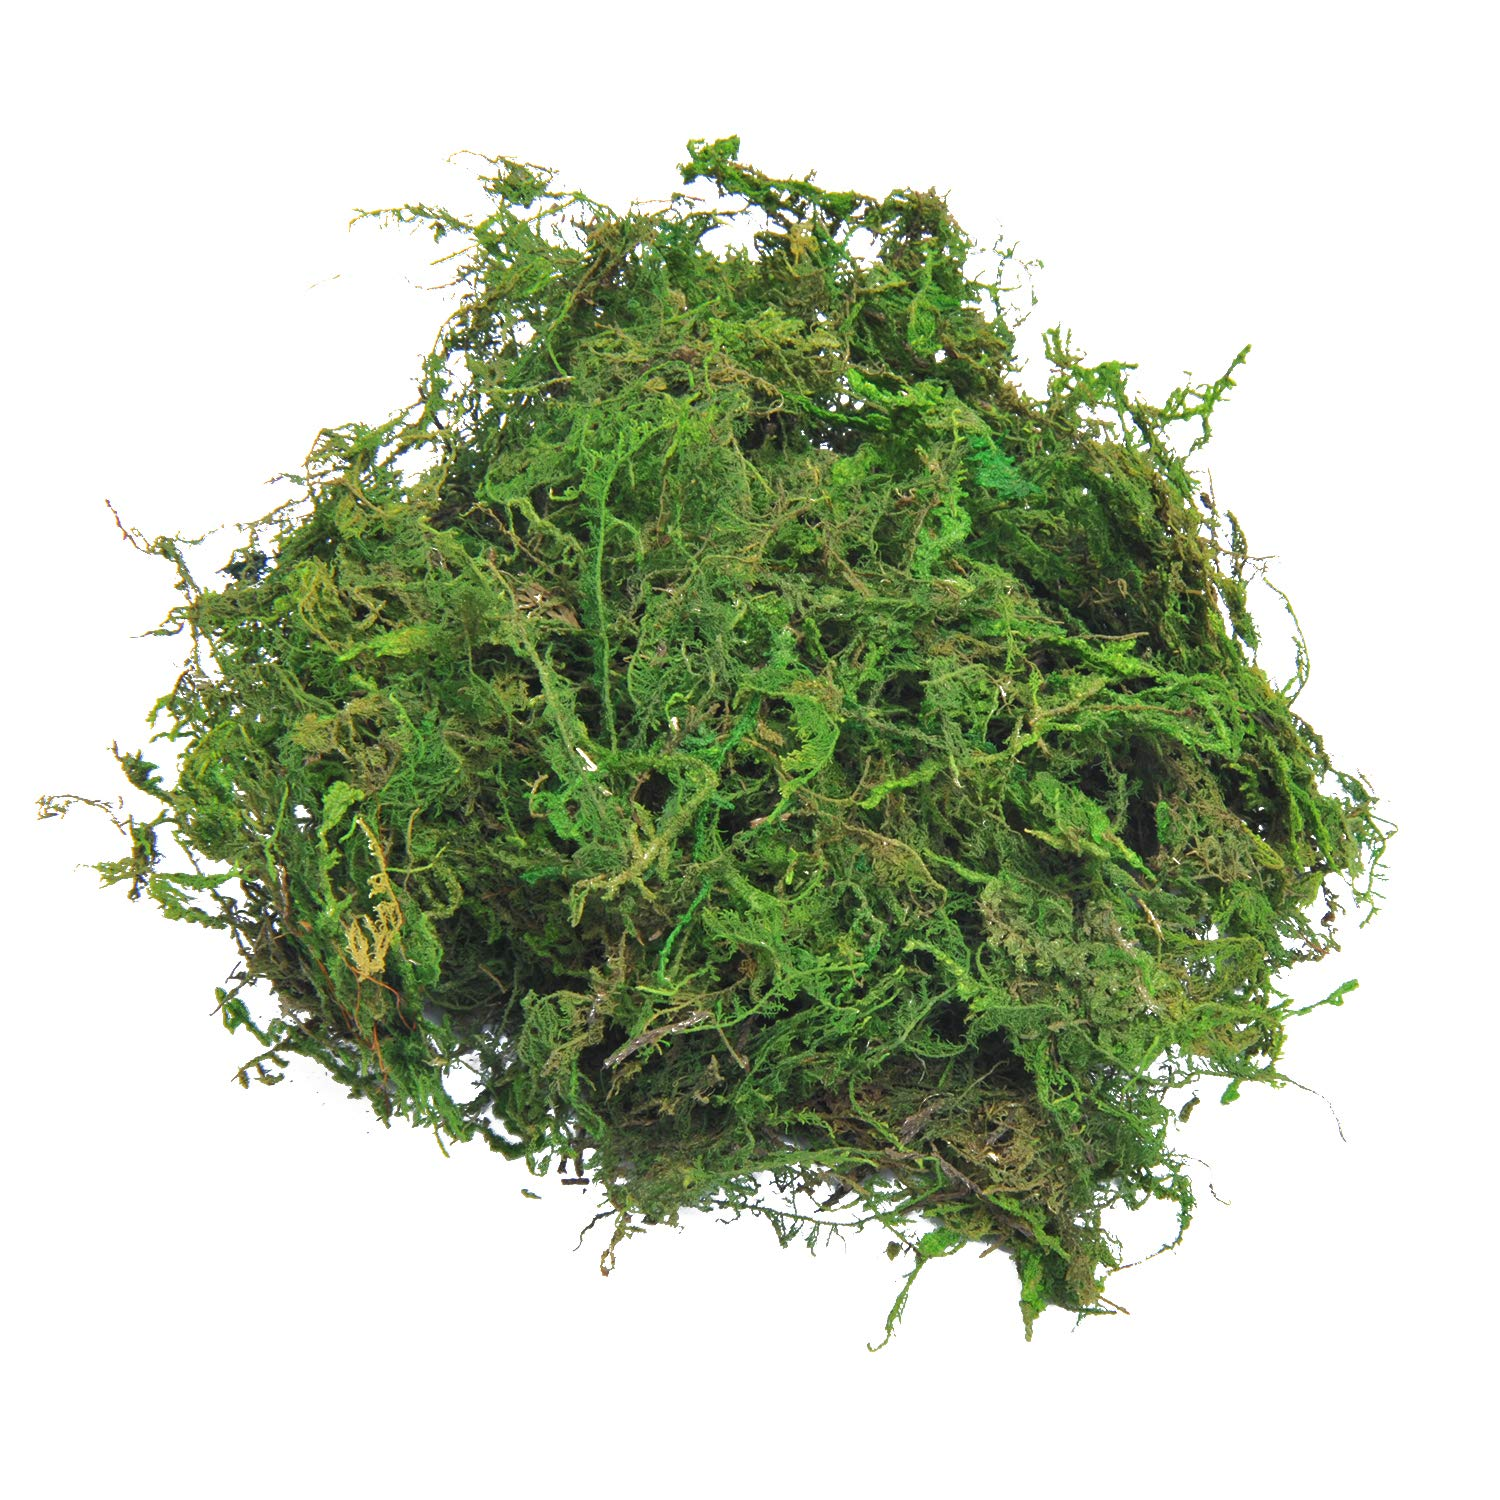 TOPCOMWW Fake Moss for Centerpieces Decor, Aftificial Green Moss for Plant Crafts Flower, 3.5oz